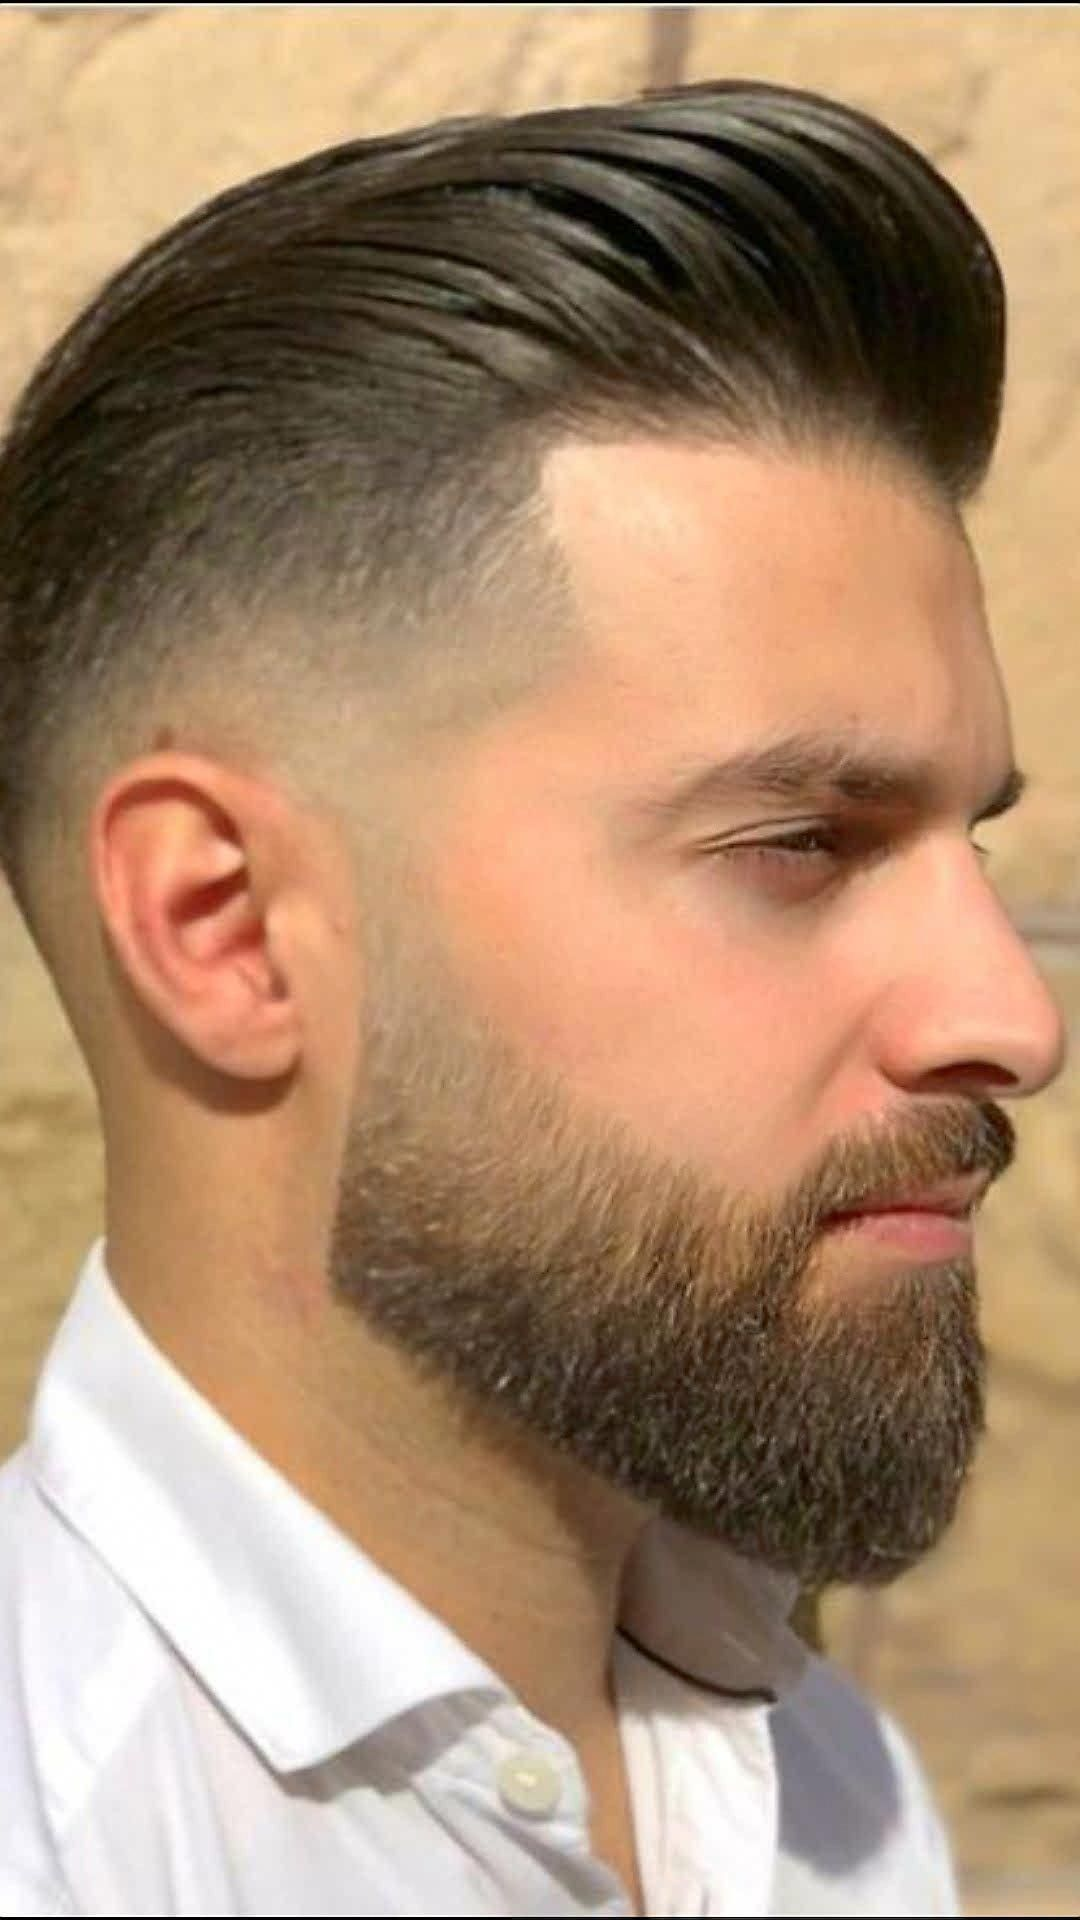 Check This Out Shorthairstylesformen Coiffure Homme Barbe Coiffure Homme Coiffure Homme Court